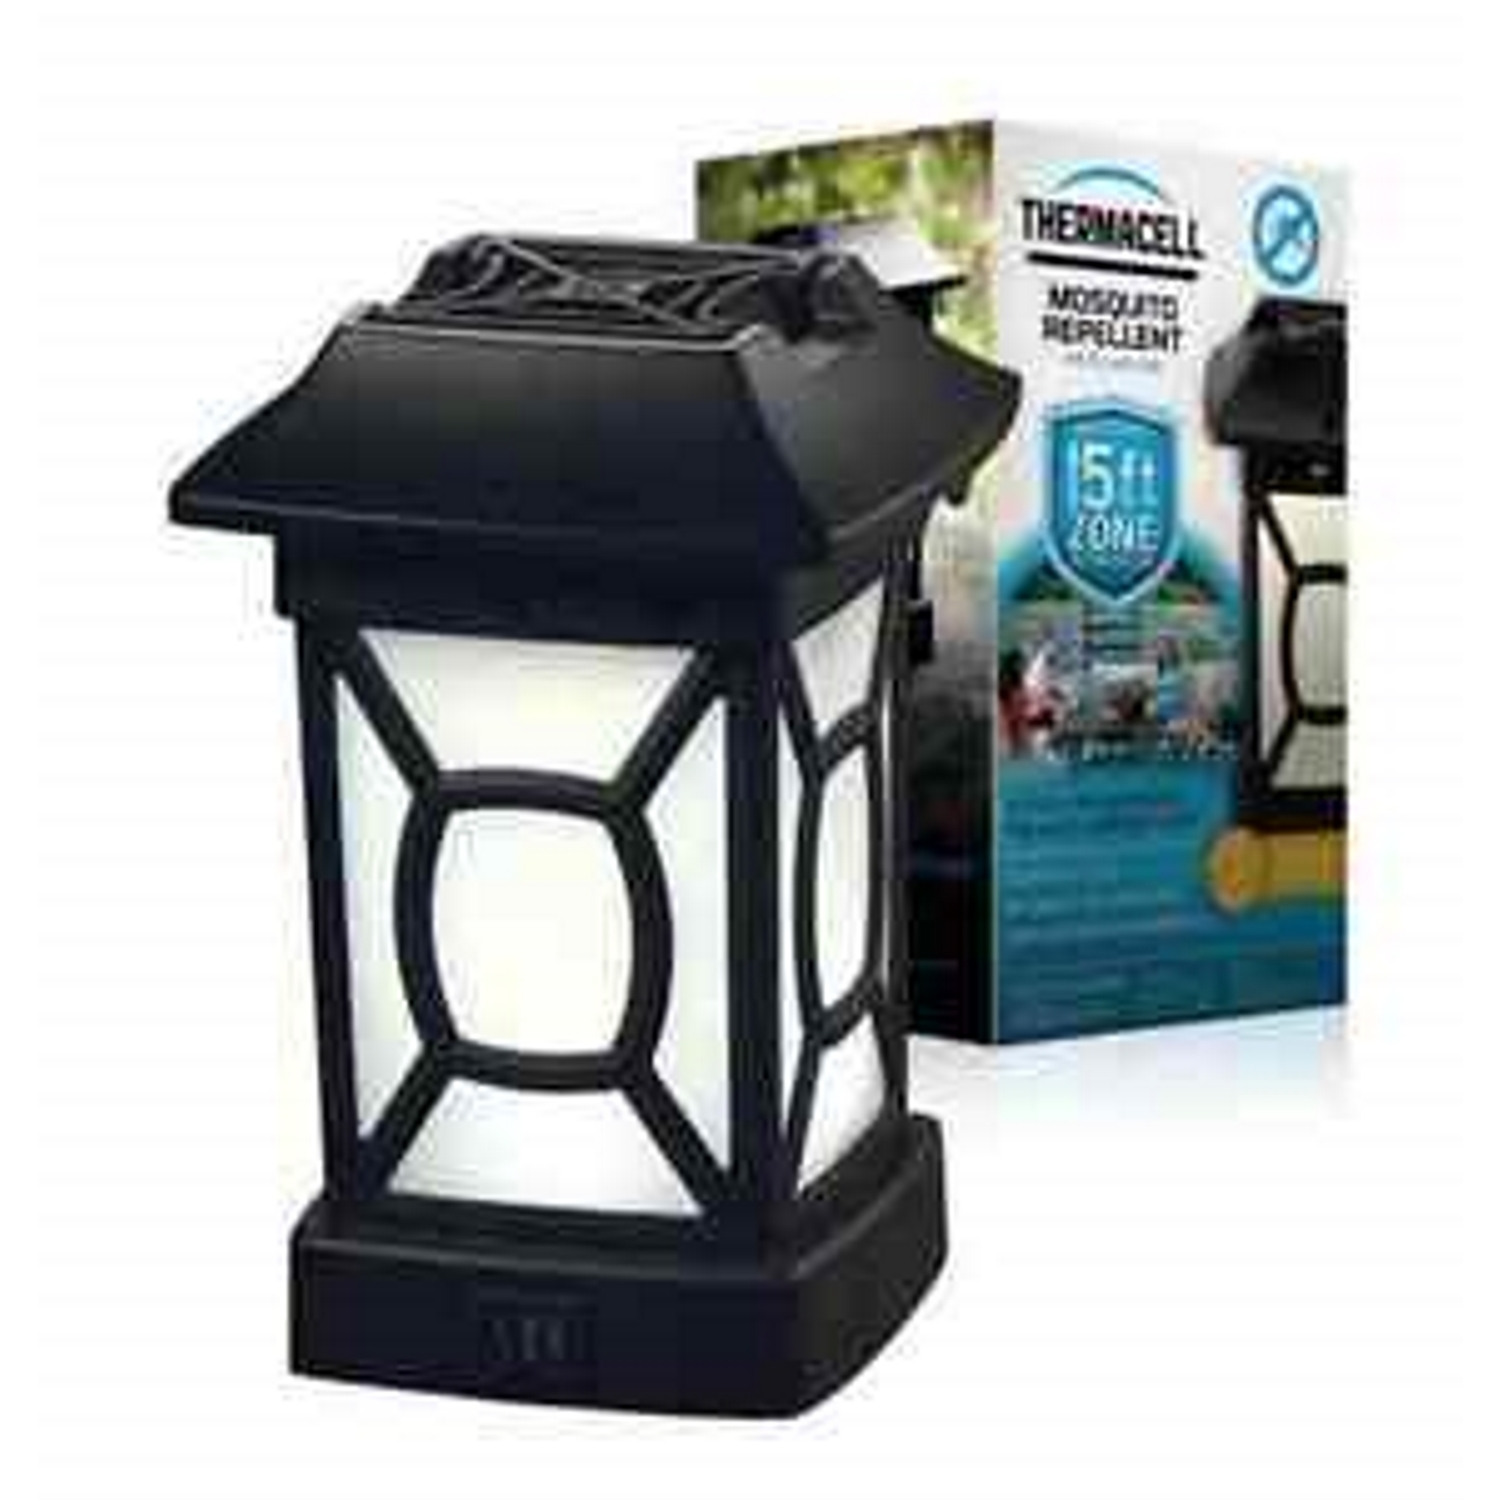 Thermacell Insect Repellent Lantern For Mosquitoes/Other Flying Insects 1.7 oz. The Thermacell Mosquito Repeller Cambridge Lantern effectively repels mosquitoes, black flies and other biting insects by creating a 15 x 15-feet zone of protection for bug-free comfort. Its ambient light and decorative design perfectly adorn your deck or patio. Ideal for use while you are gardening, observing outdoor sporting events and hanging around the backyard, Thermacell Lanterns have been evaluated by the EPA for safety and effectiveness.